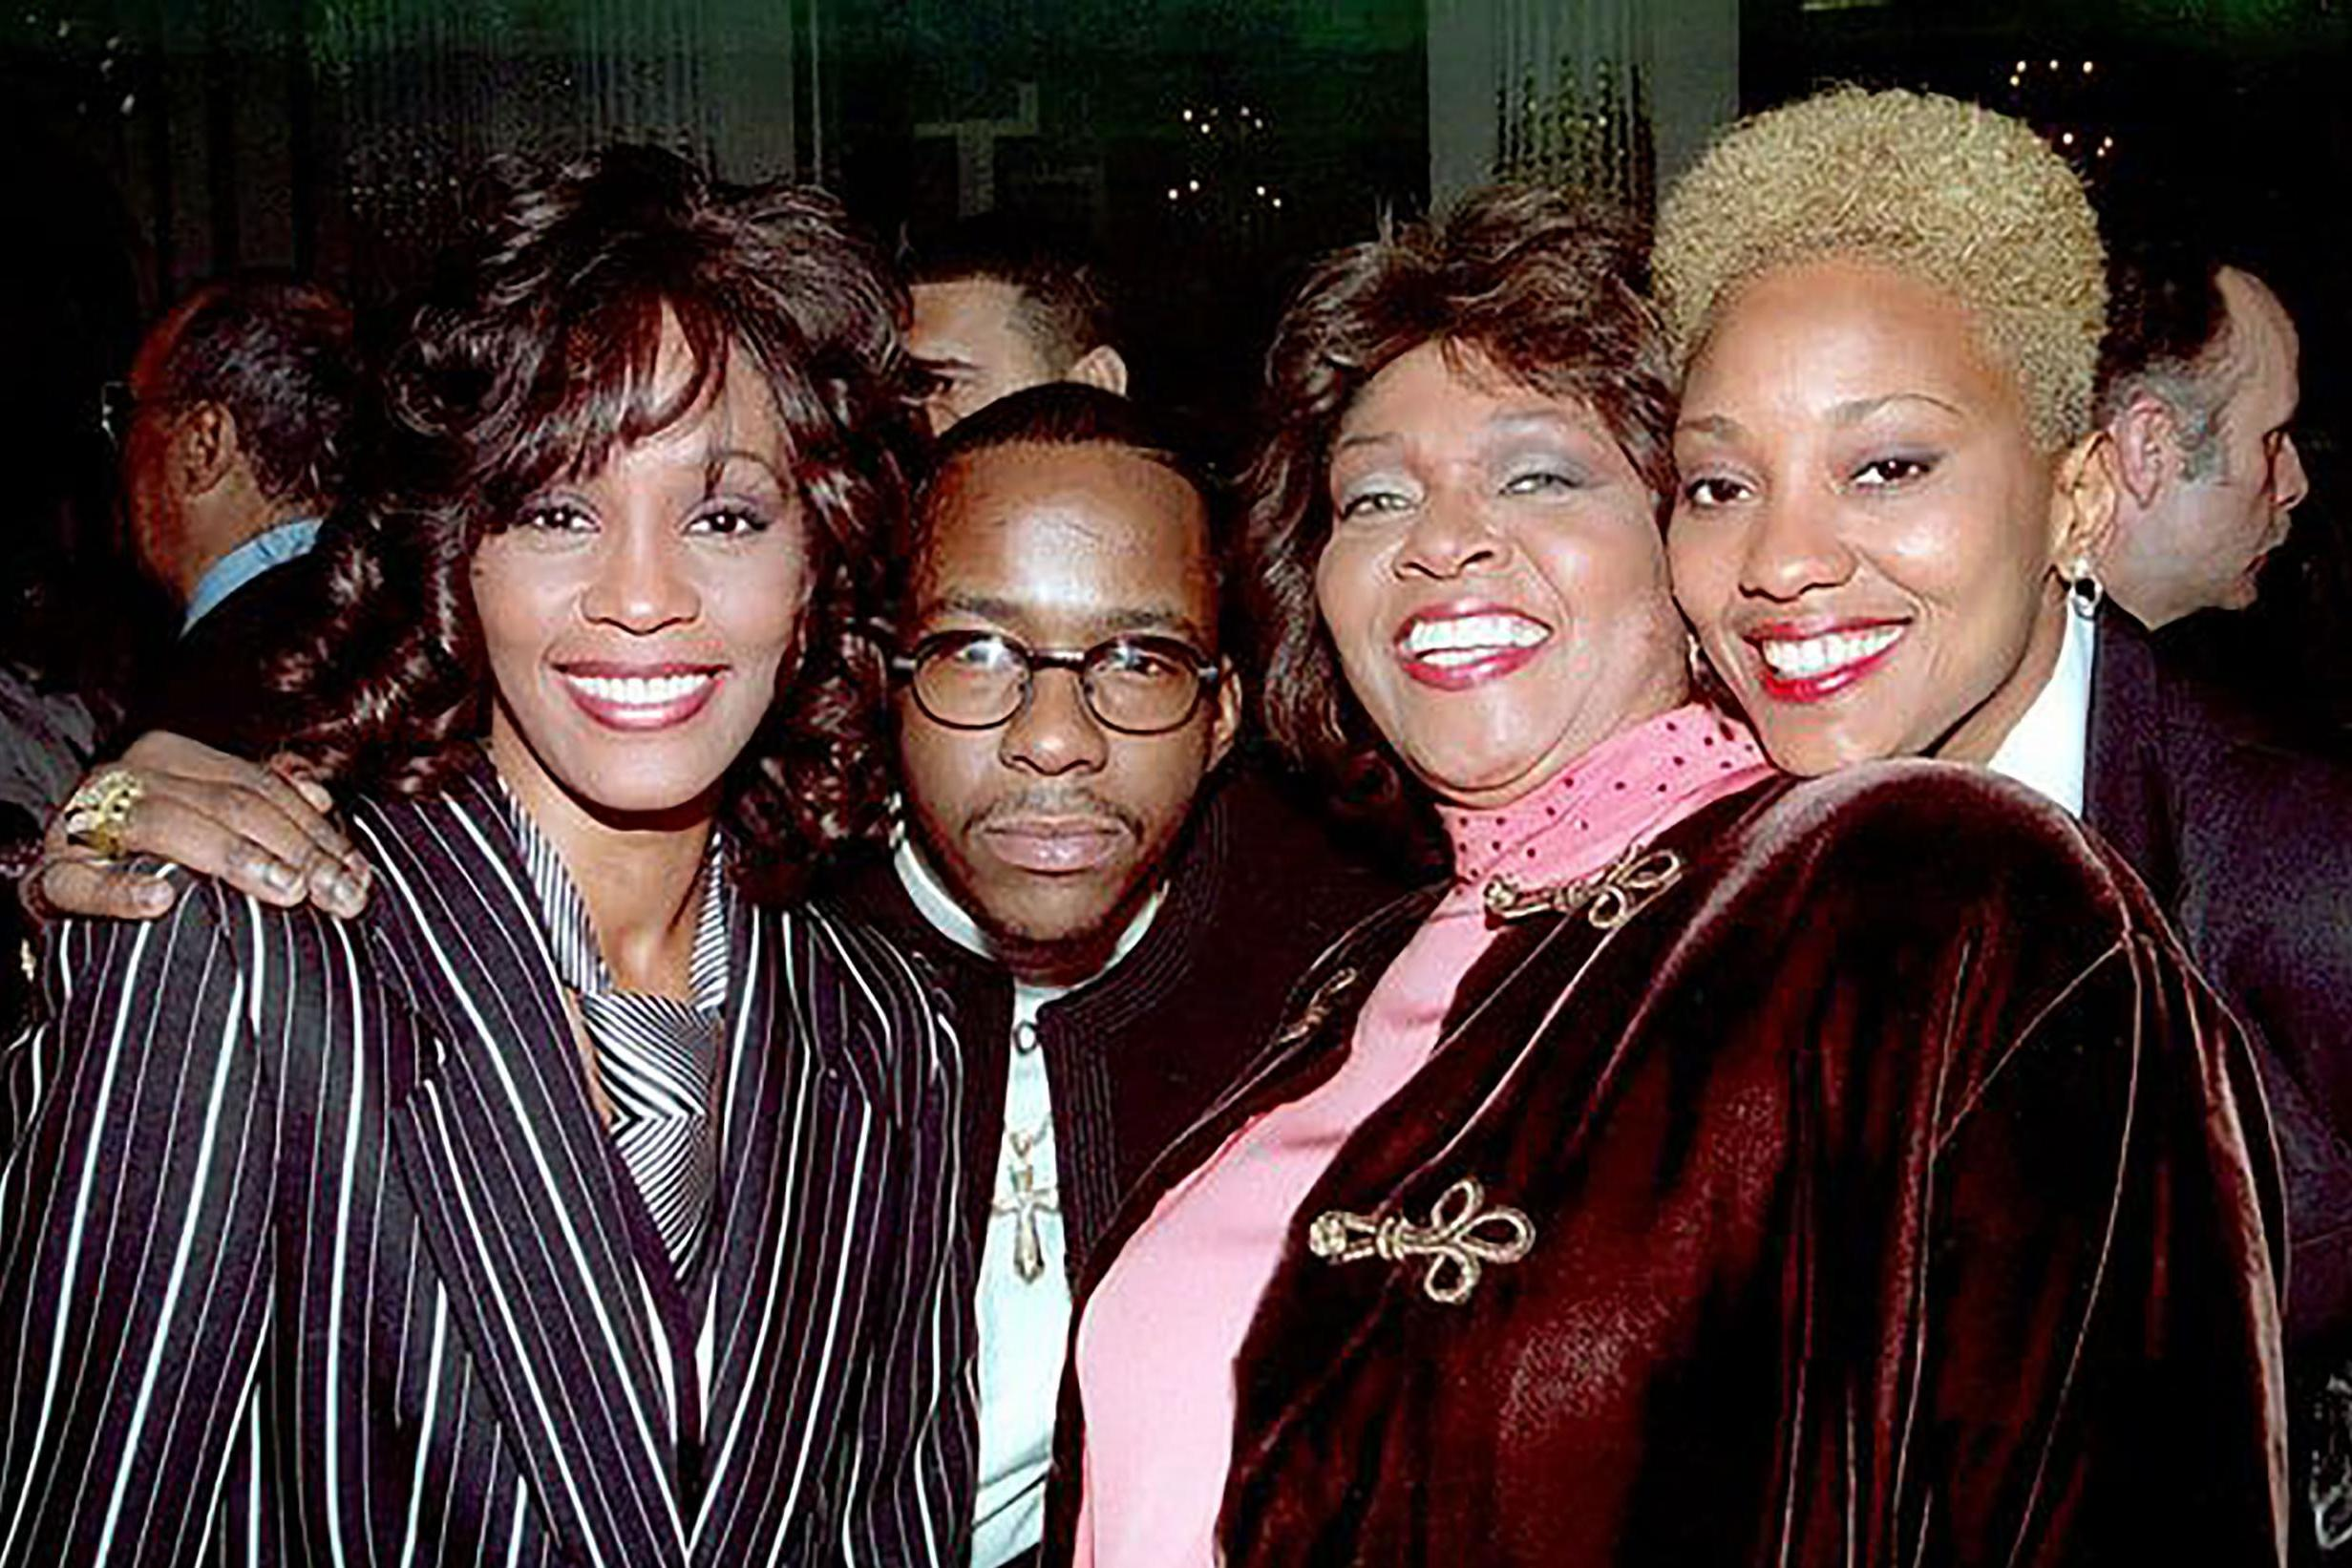 Whitney Houston's lifelong friend Robyn Crawford says they had sexual relationship